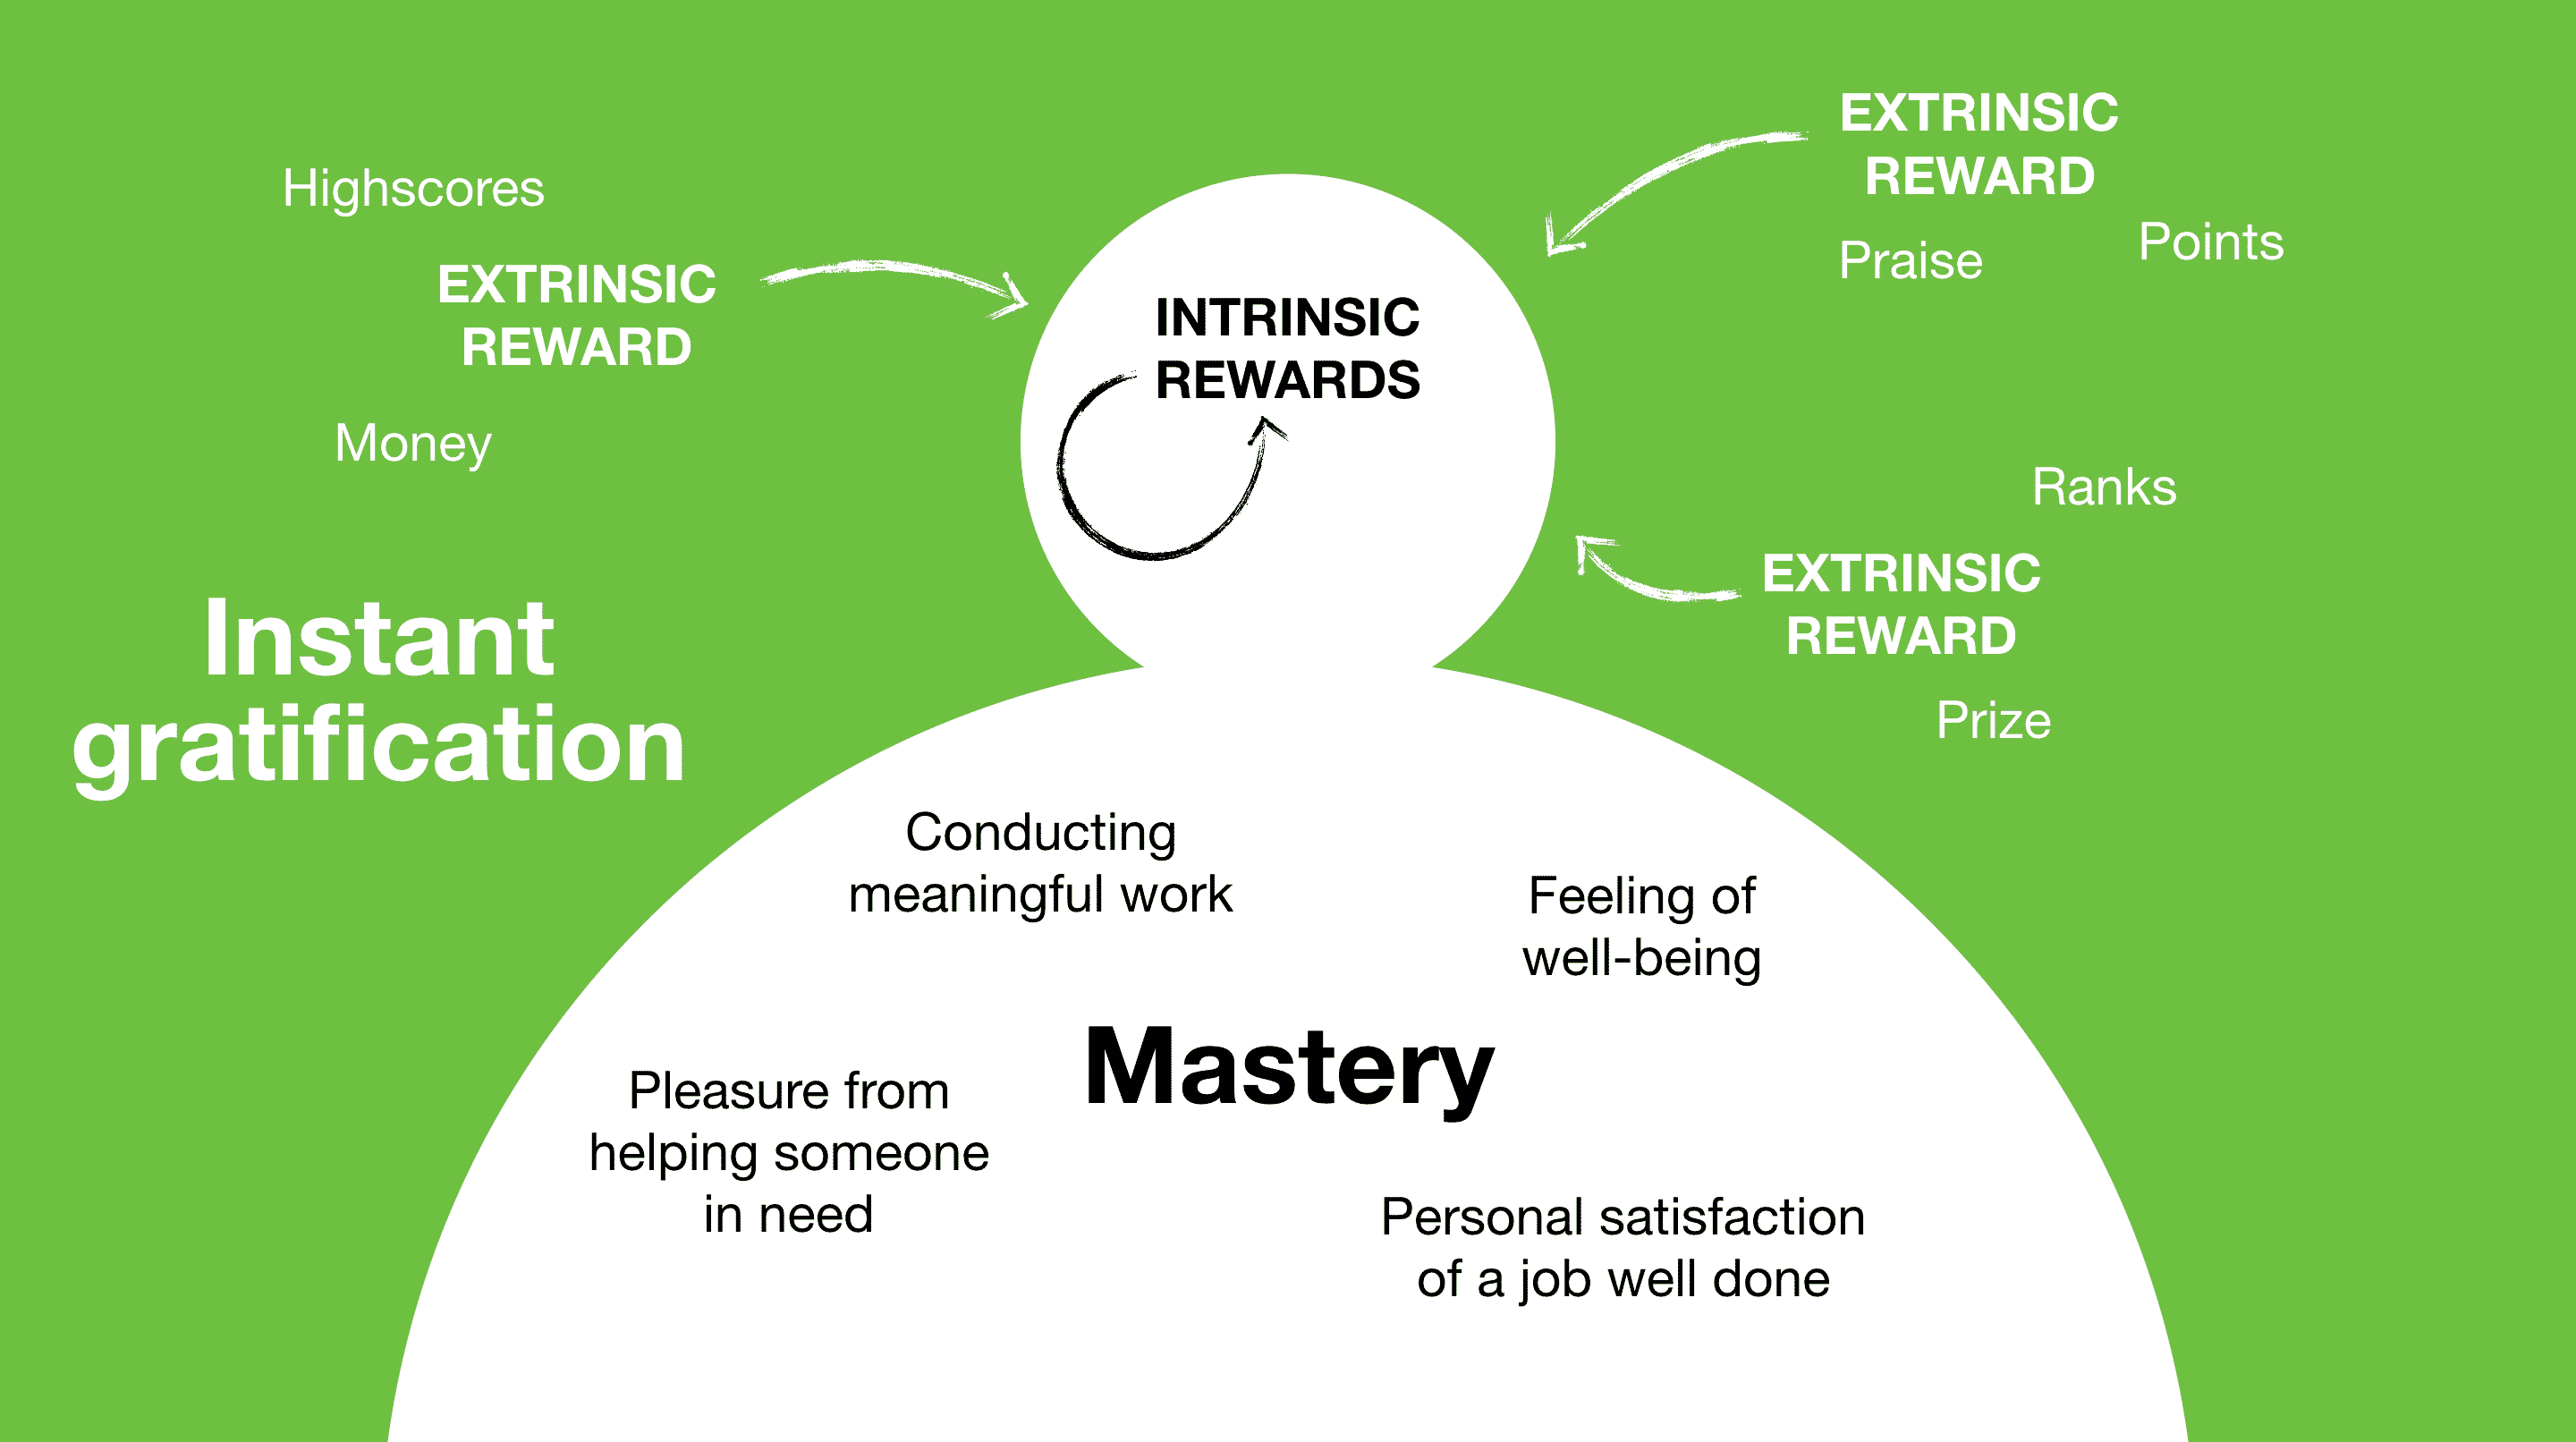 intrinsic vs extrinsic motivation in the